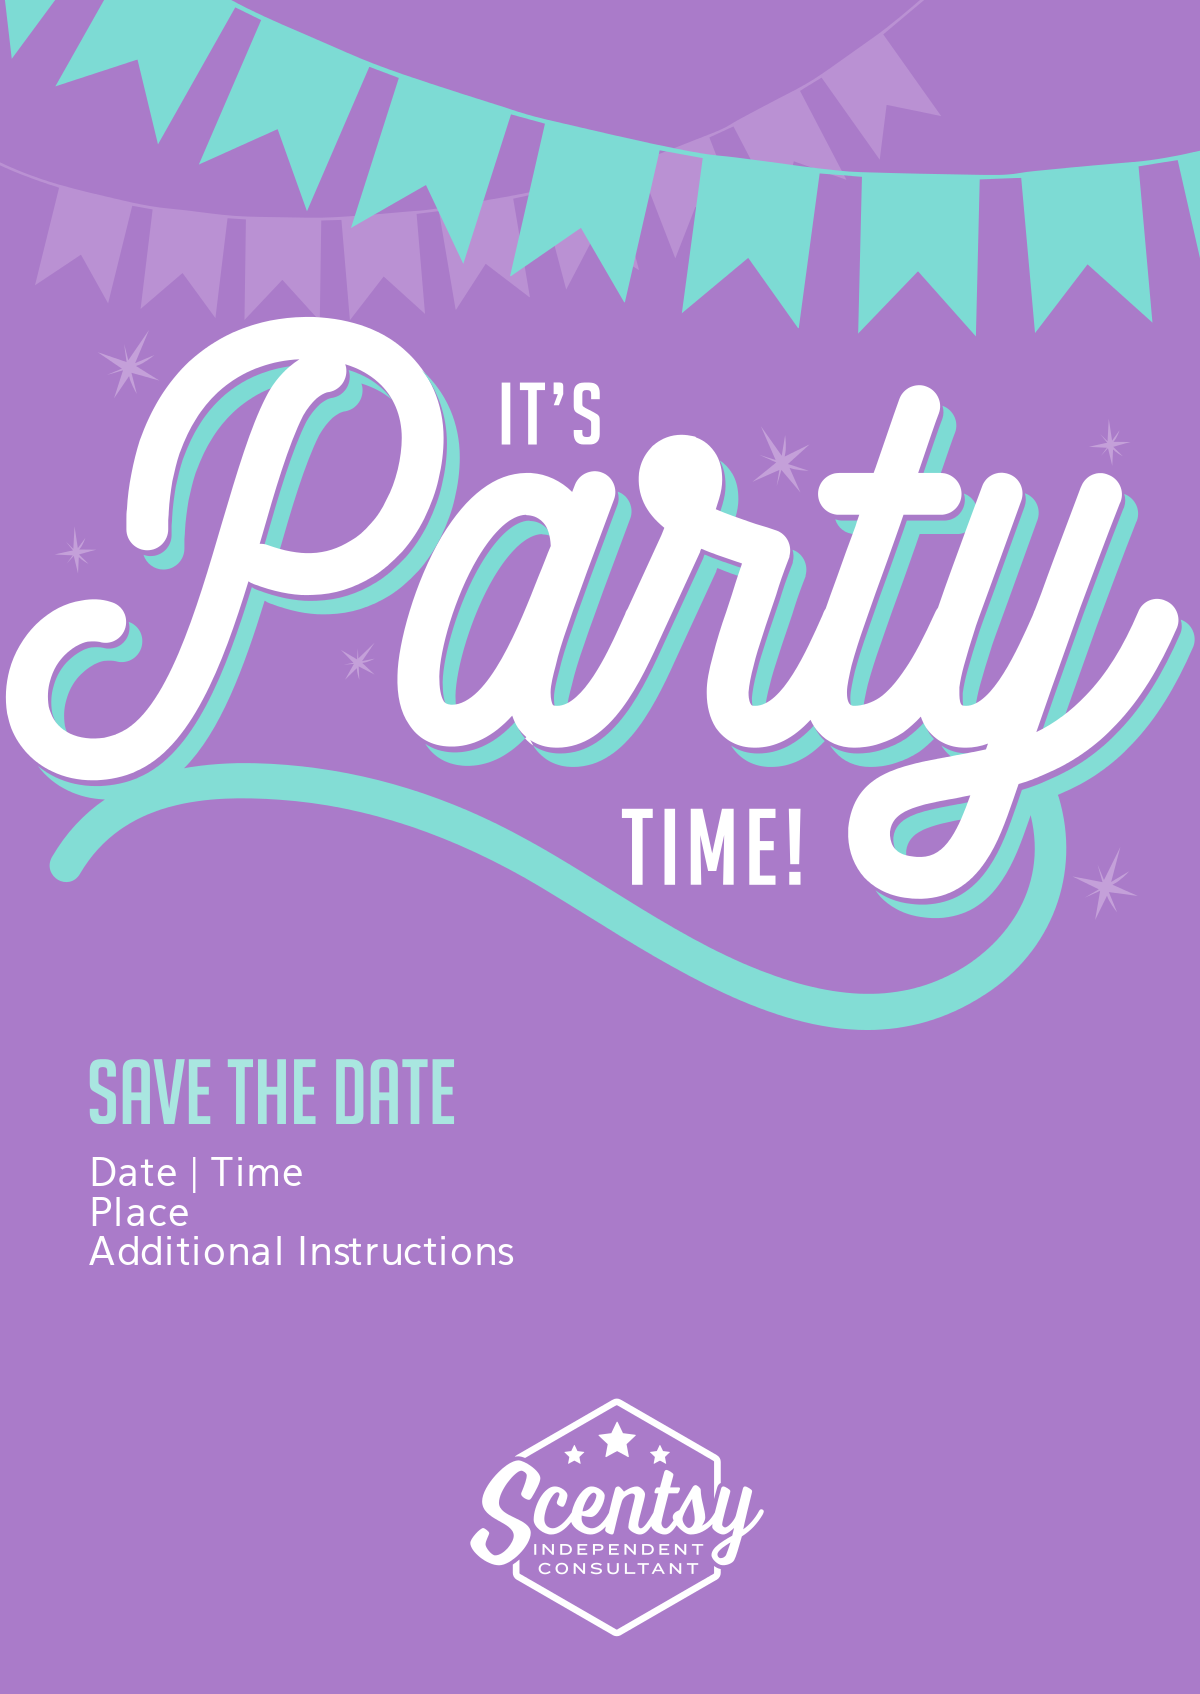 Scentsy Party Invitation | Scentsy | Pinterest | Scentsy and Party ...